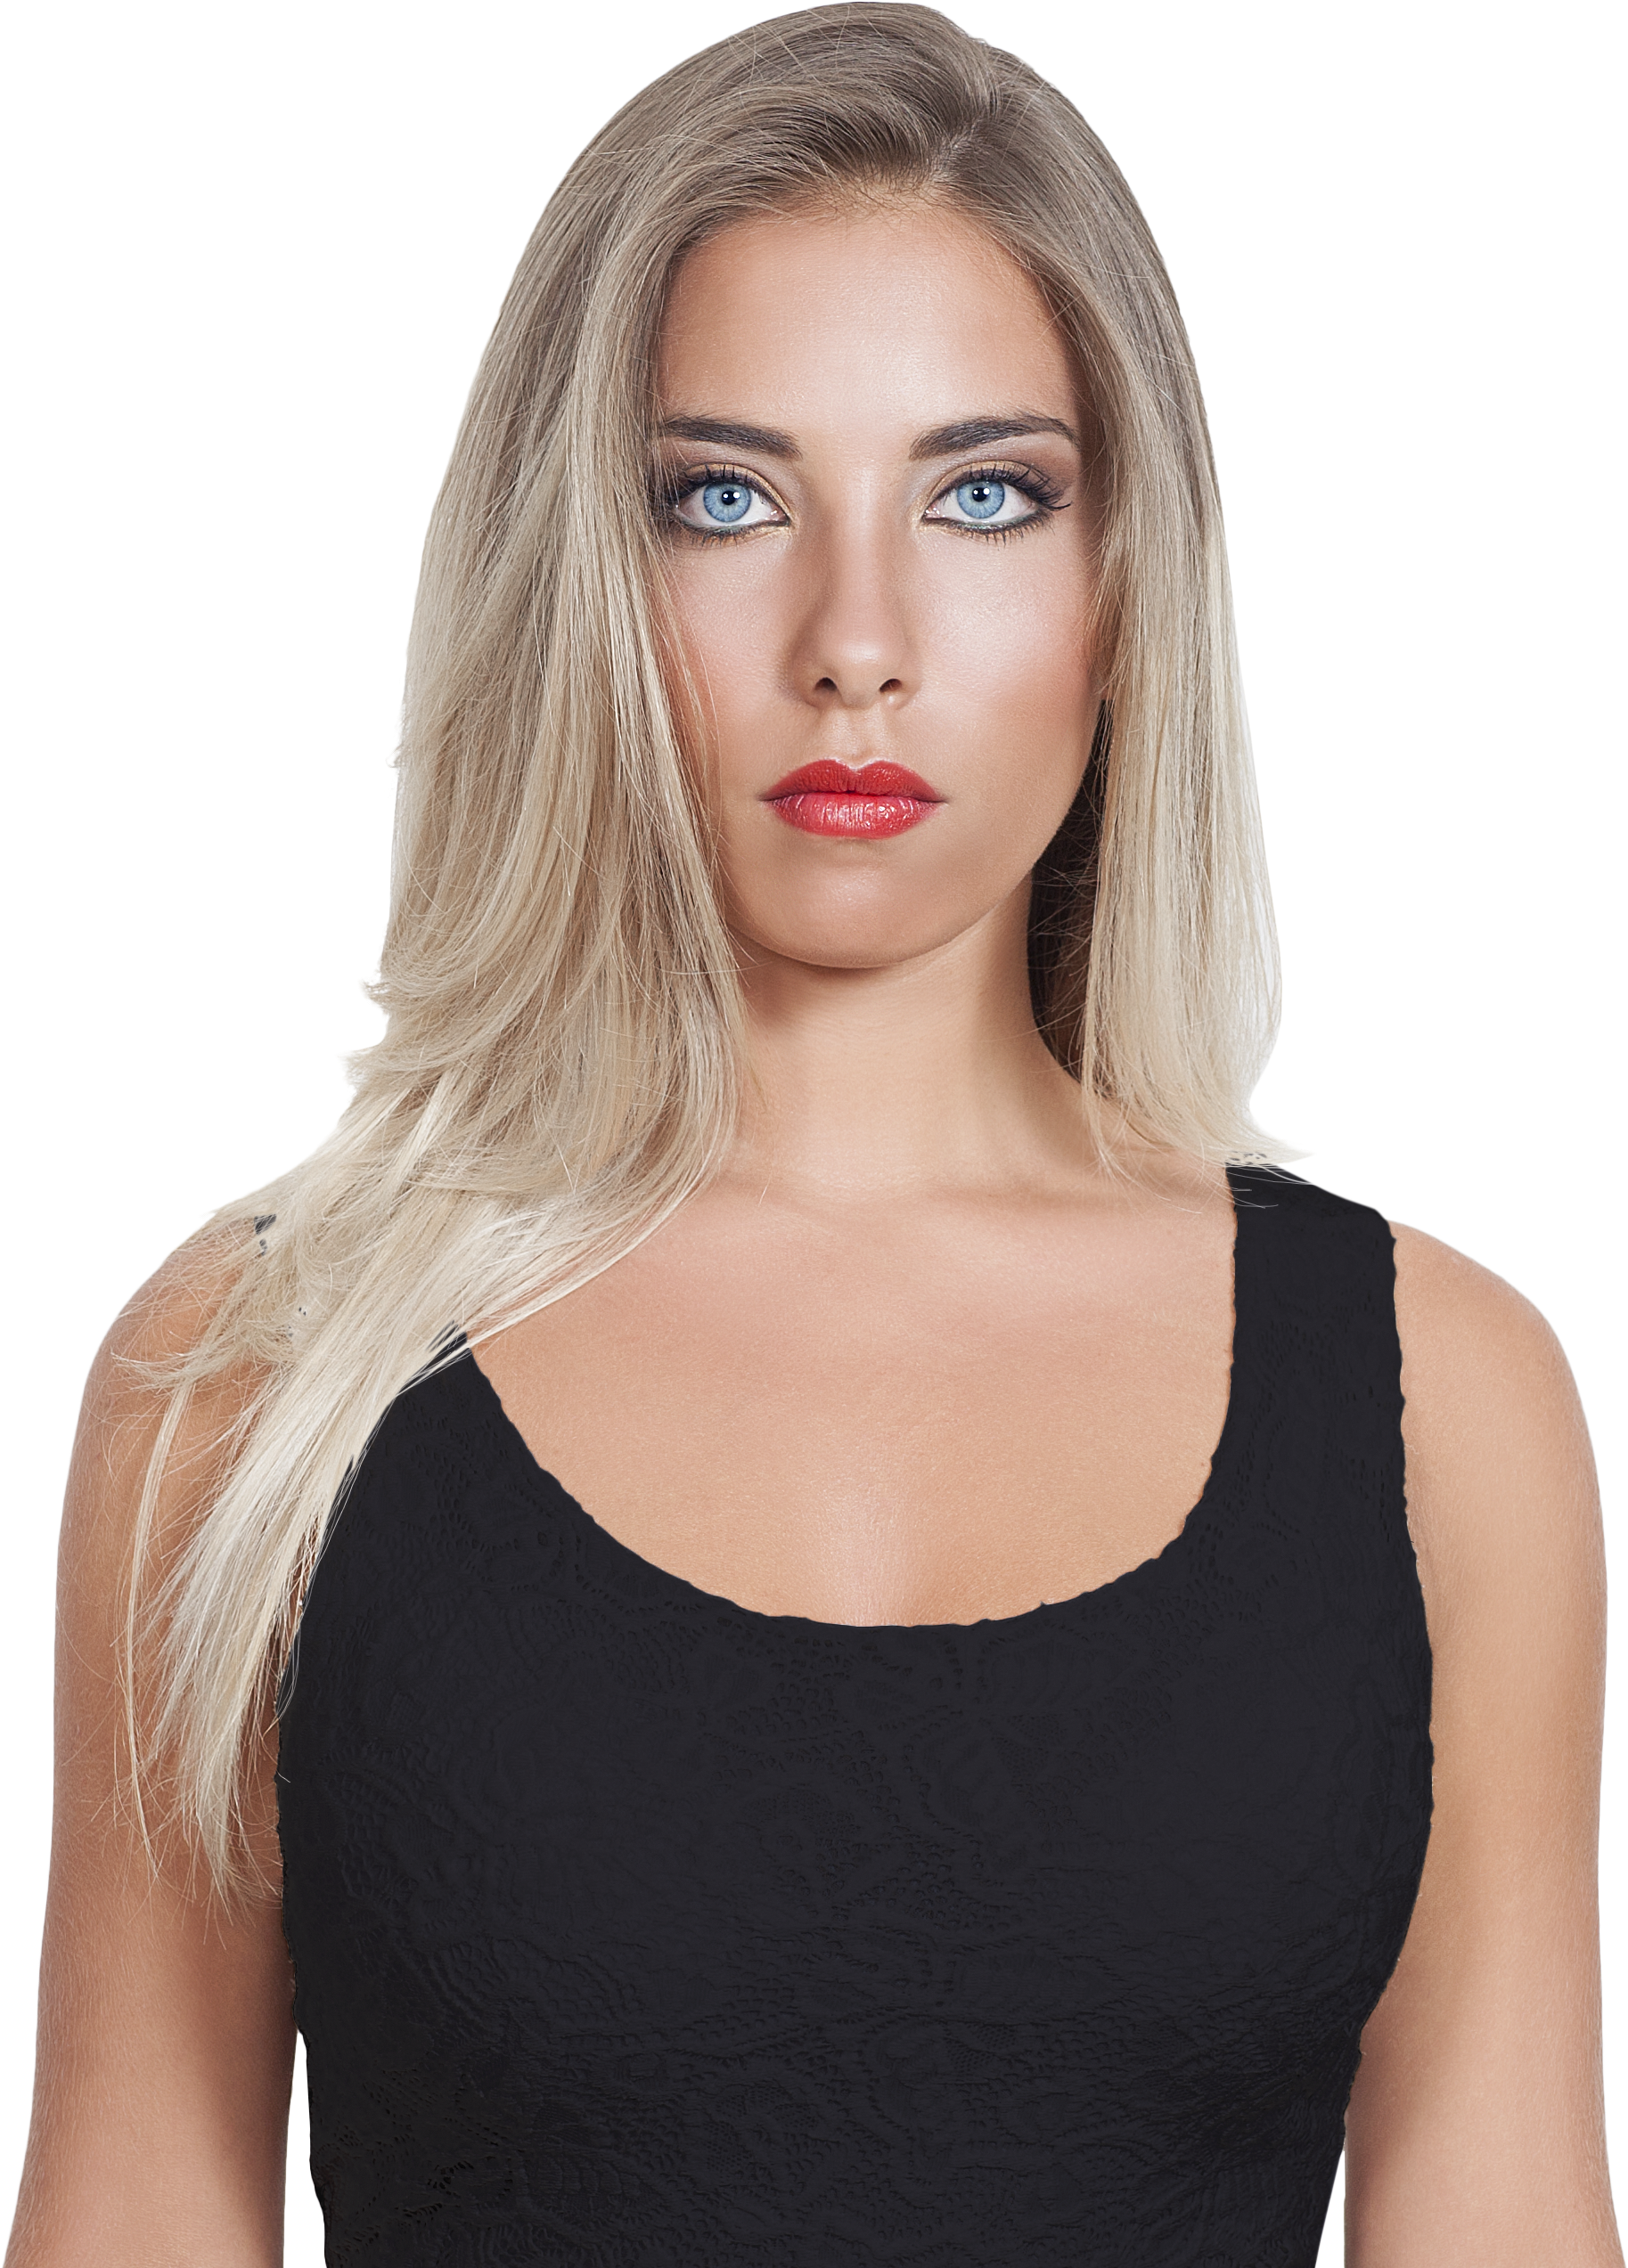 Clipart pretty blonde girl green eyes full body download Blonde Girl Png (+) - Free Download | fourjay.org download